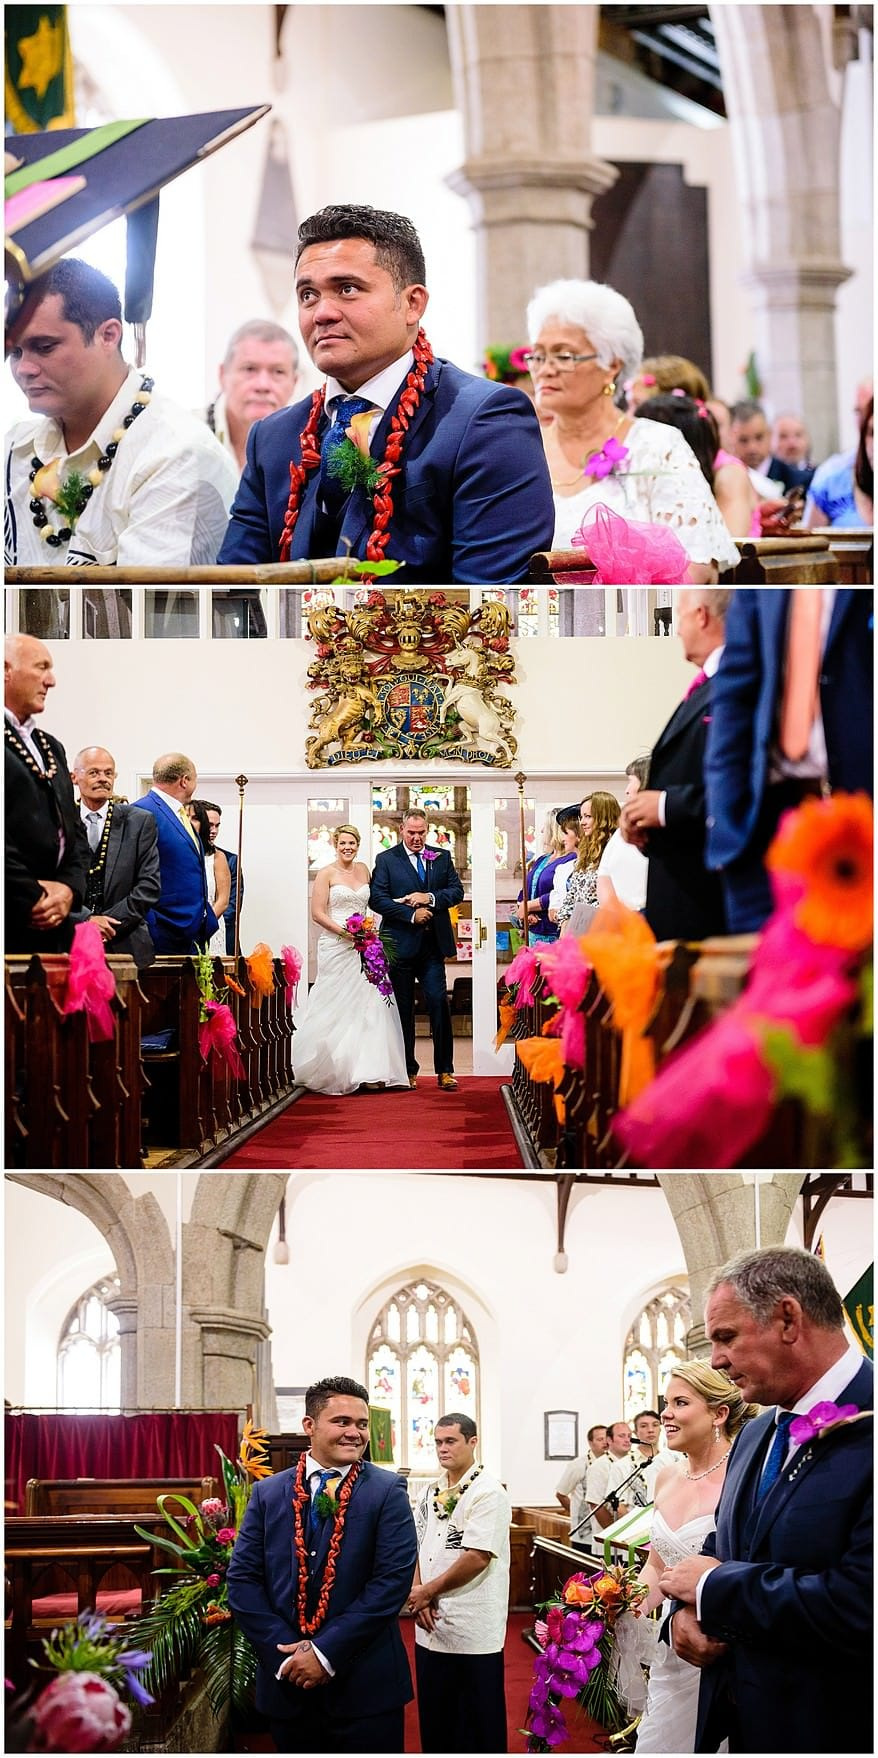 Bride walking down the aisle at Illogan church